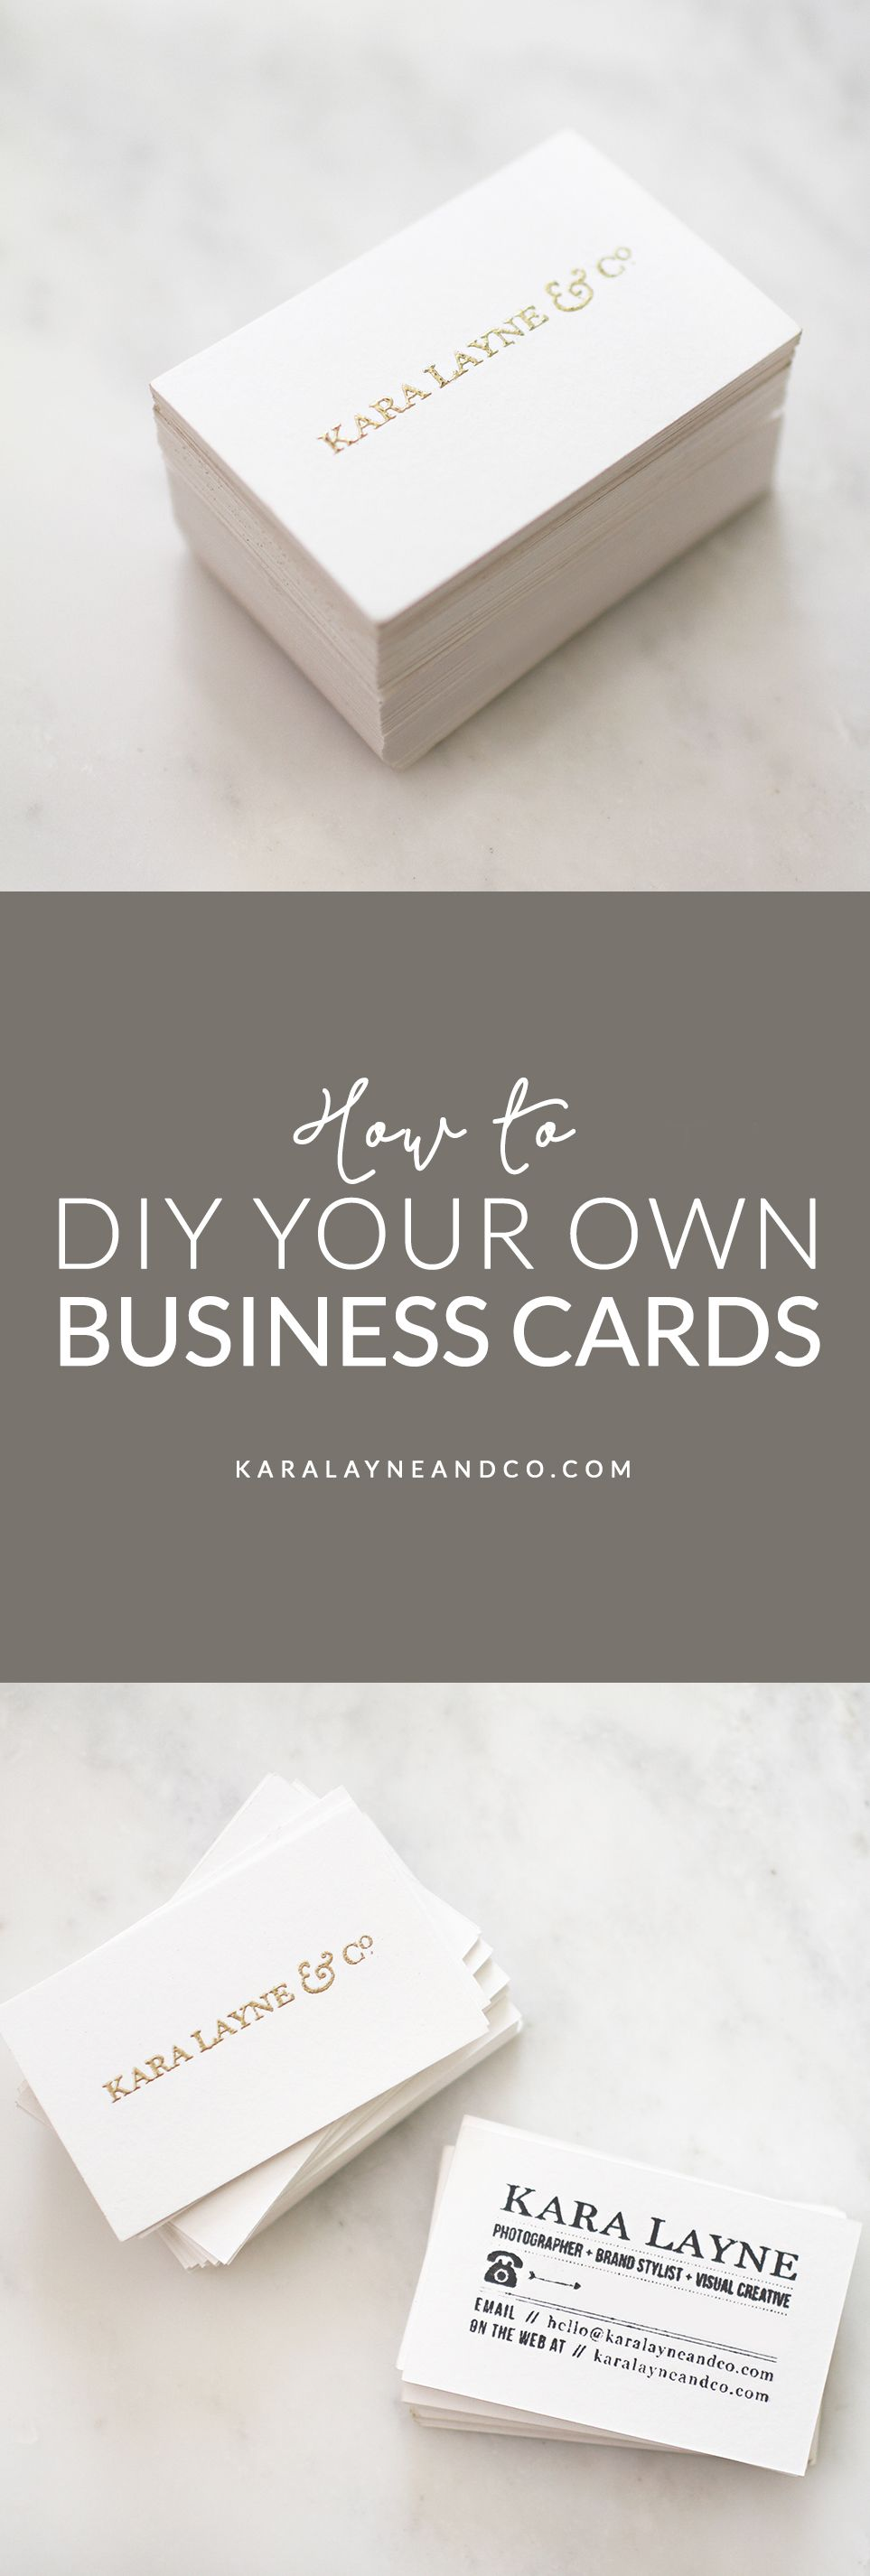 Business meets diy branding design business cards and business business meets diy creative business cardscraft businessbusiness card designcreate reheart Images